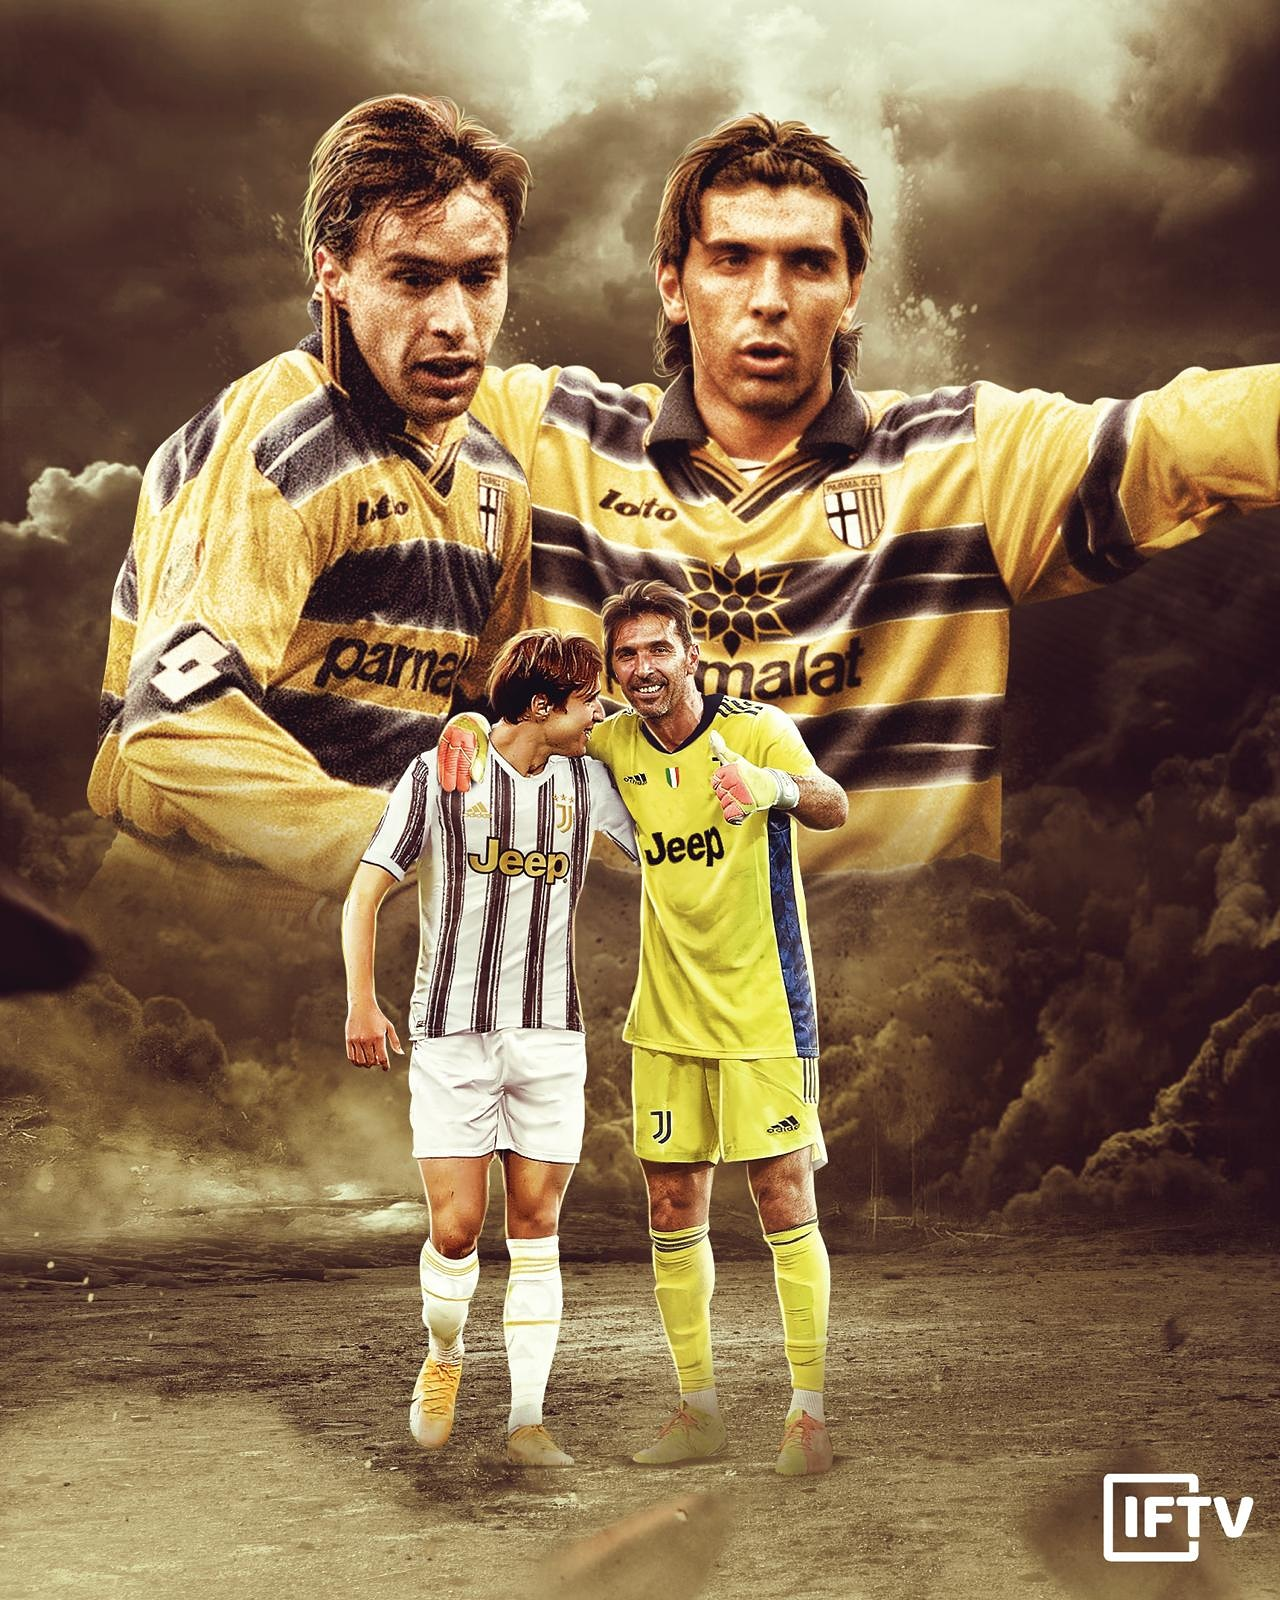 """Italian Football TV on Twitter: """"Gianluigi Buffon was teammates at Parma  with Enrico Chiesa in 1999, 19 years later Gigi is now teammates with his  son at Juventus: Federico Chiesa… https://t.co/u07r9jEUD4"""""""